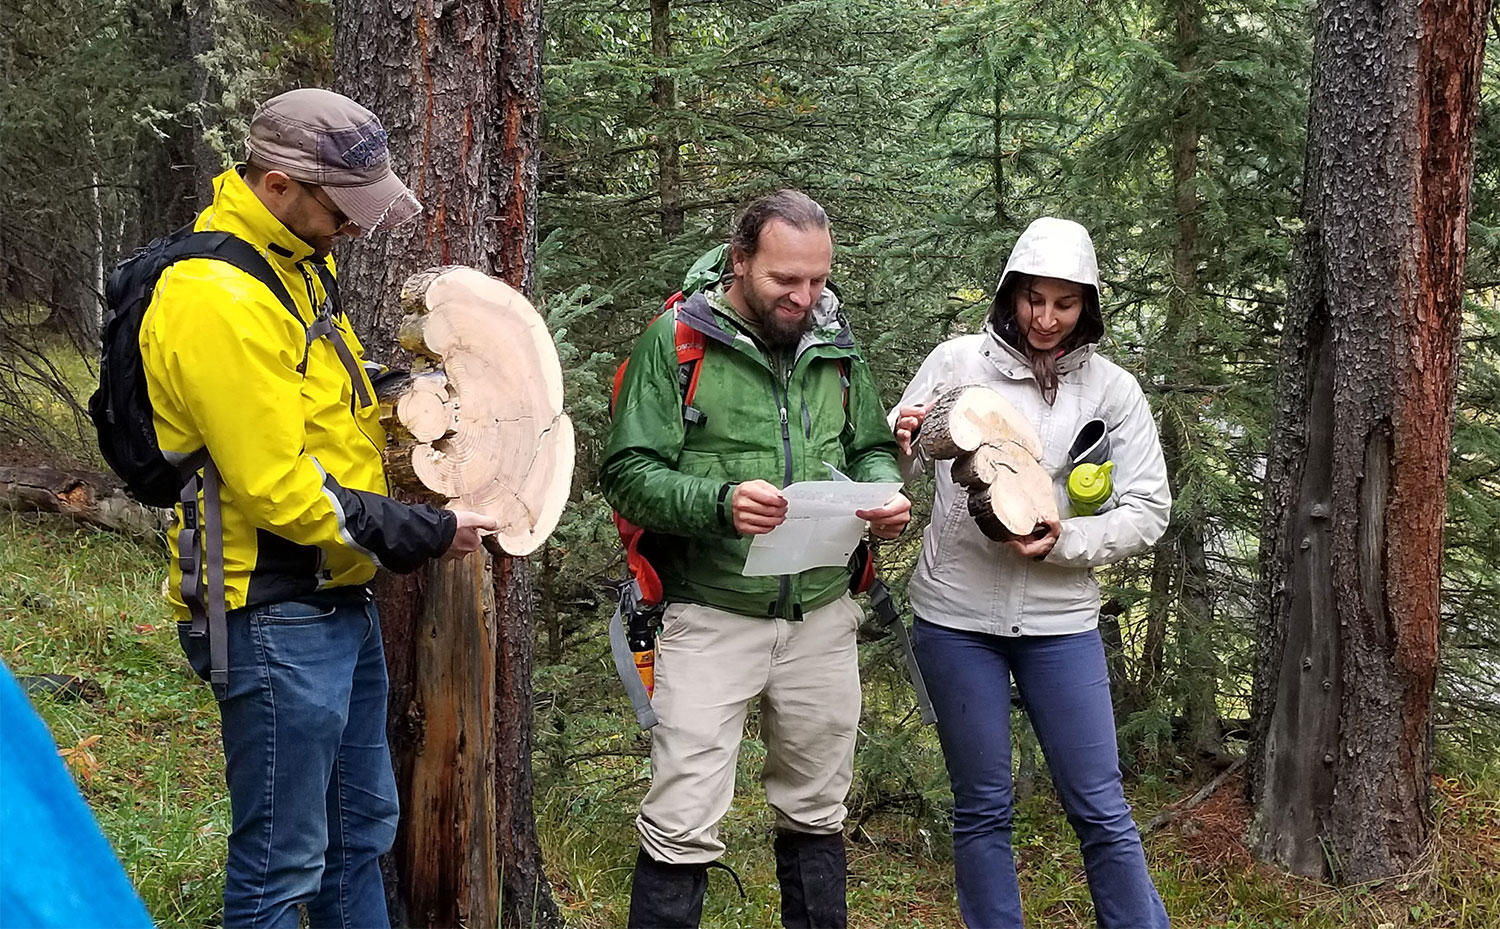 Cameron Naficy (centre) shows some fire scar samples taken from lodgepole pine near Sheep River Provincial Park. He is flanked by Alex Chubaty, fRI Research (left) and Ceres Barros, Landscapes in Motion/UBC (right). Photo by S. Odsen.